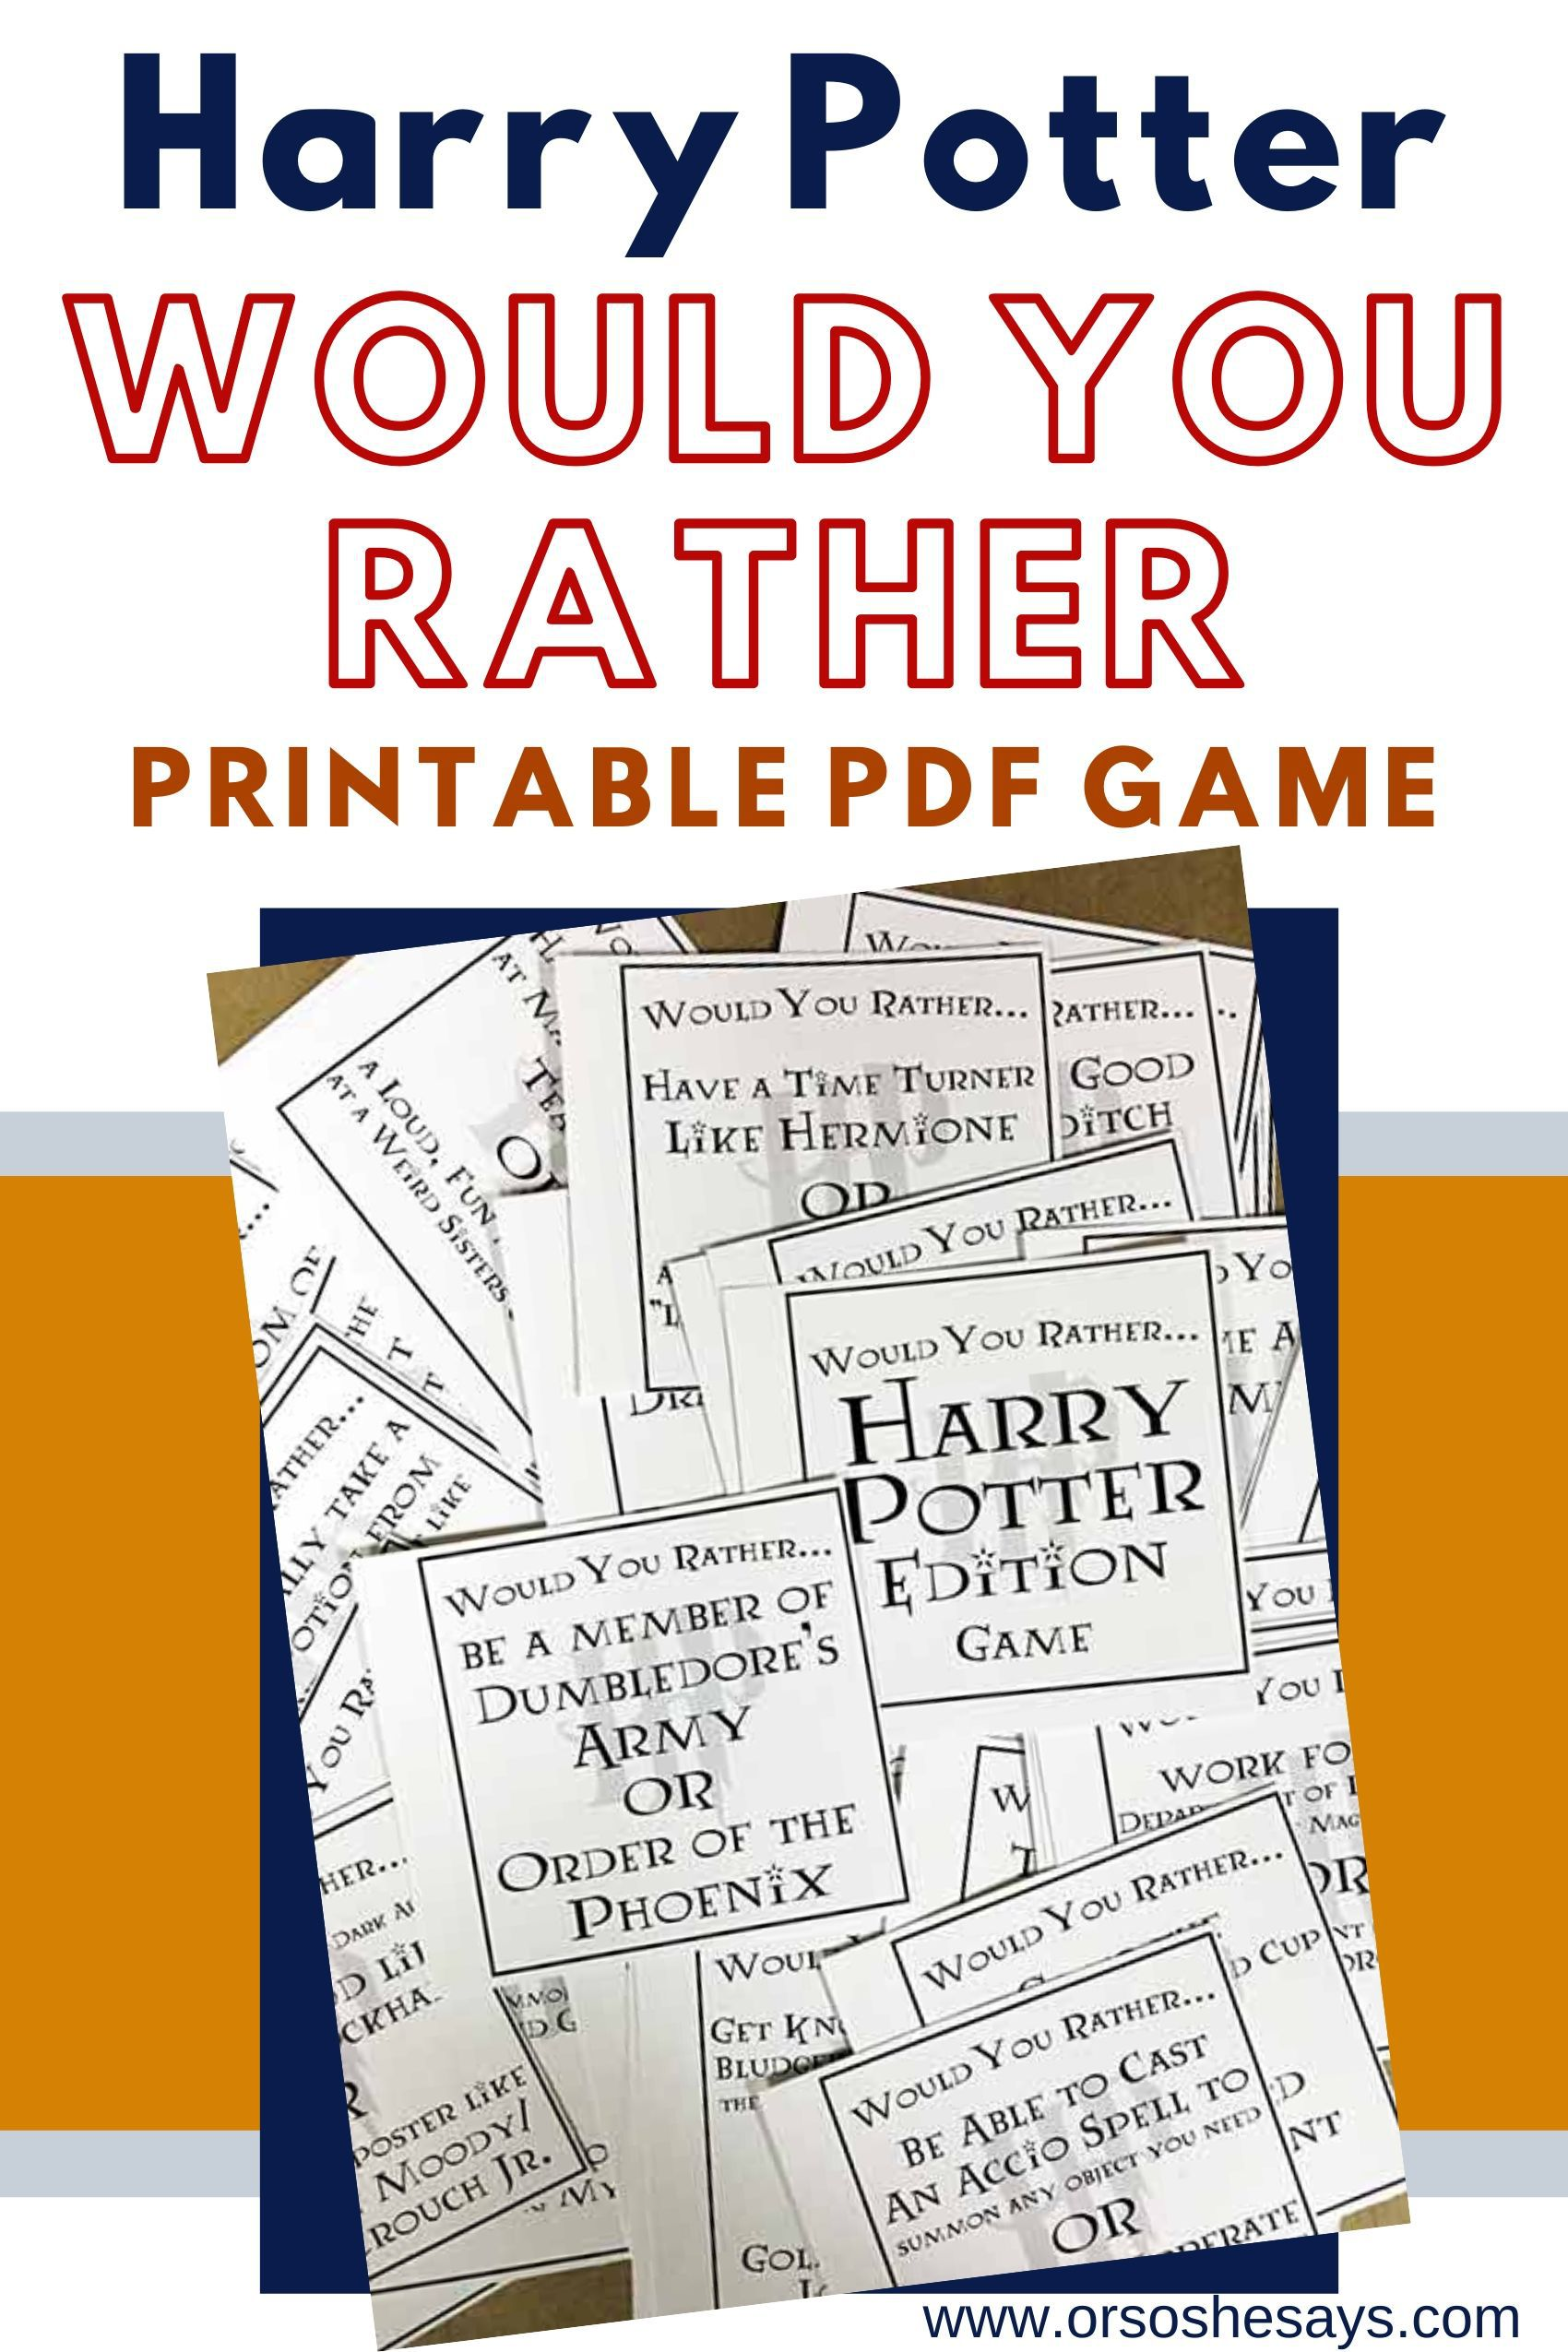 Harry Potter Would You Rather Printable Pdf Game